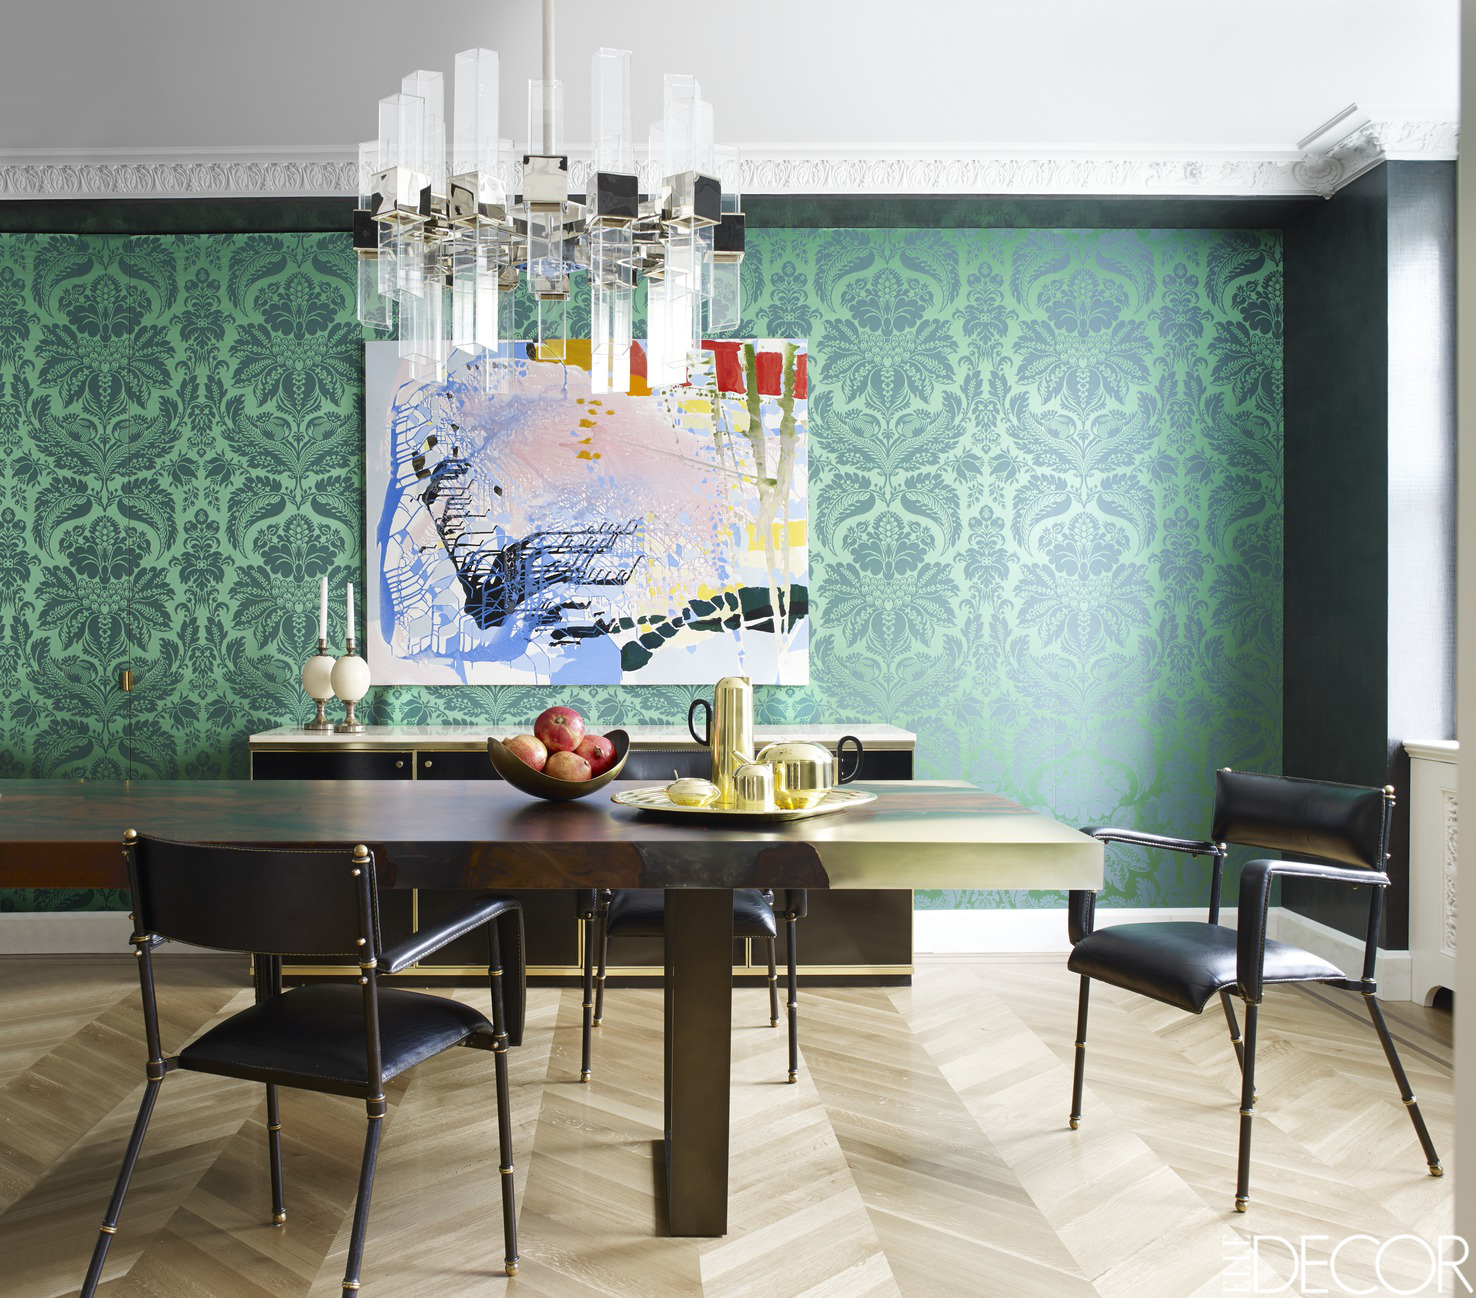 Dining Rooms From Elle Decor: 7 Simple Ways To Make Your Dining Room Look Expensive